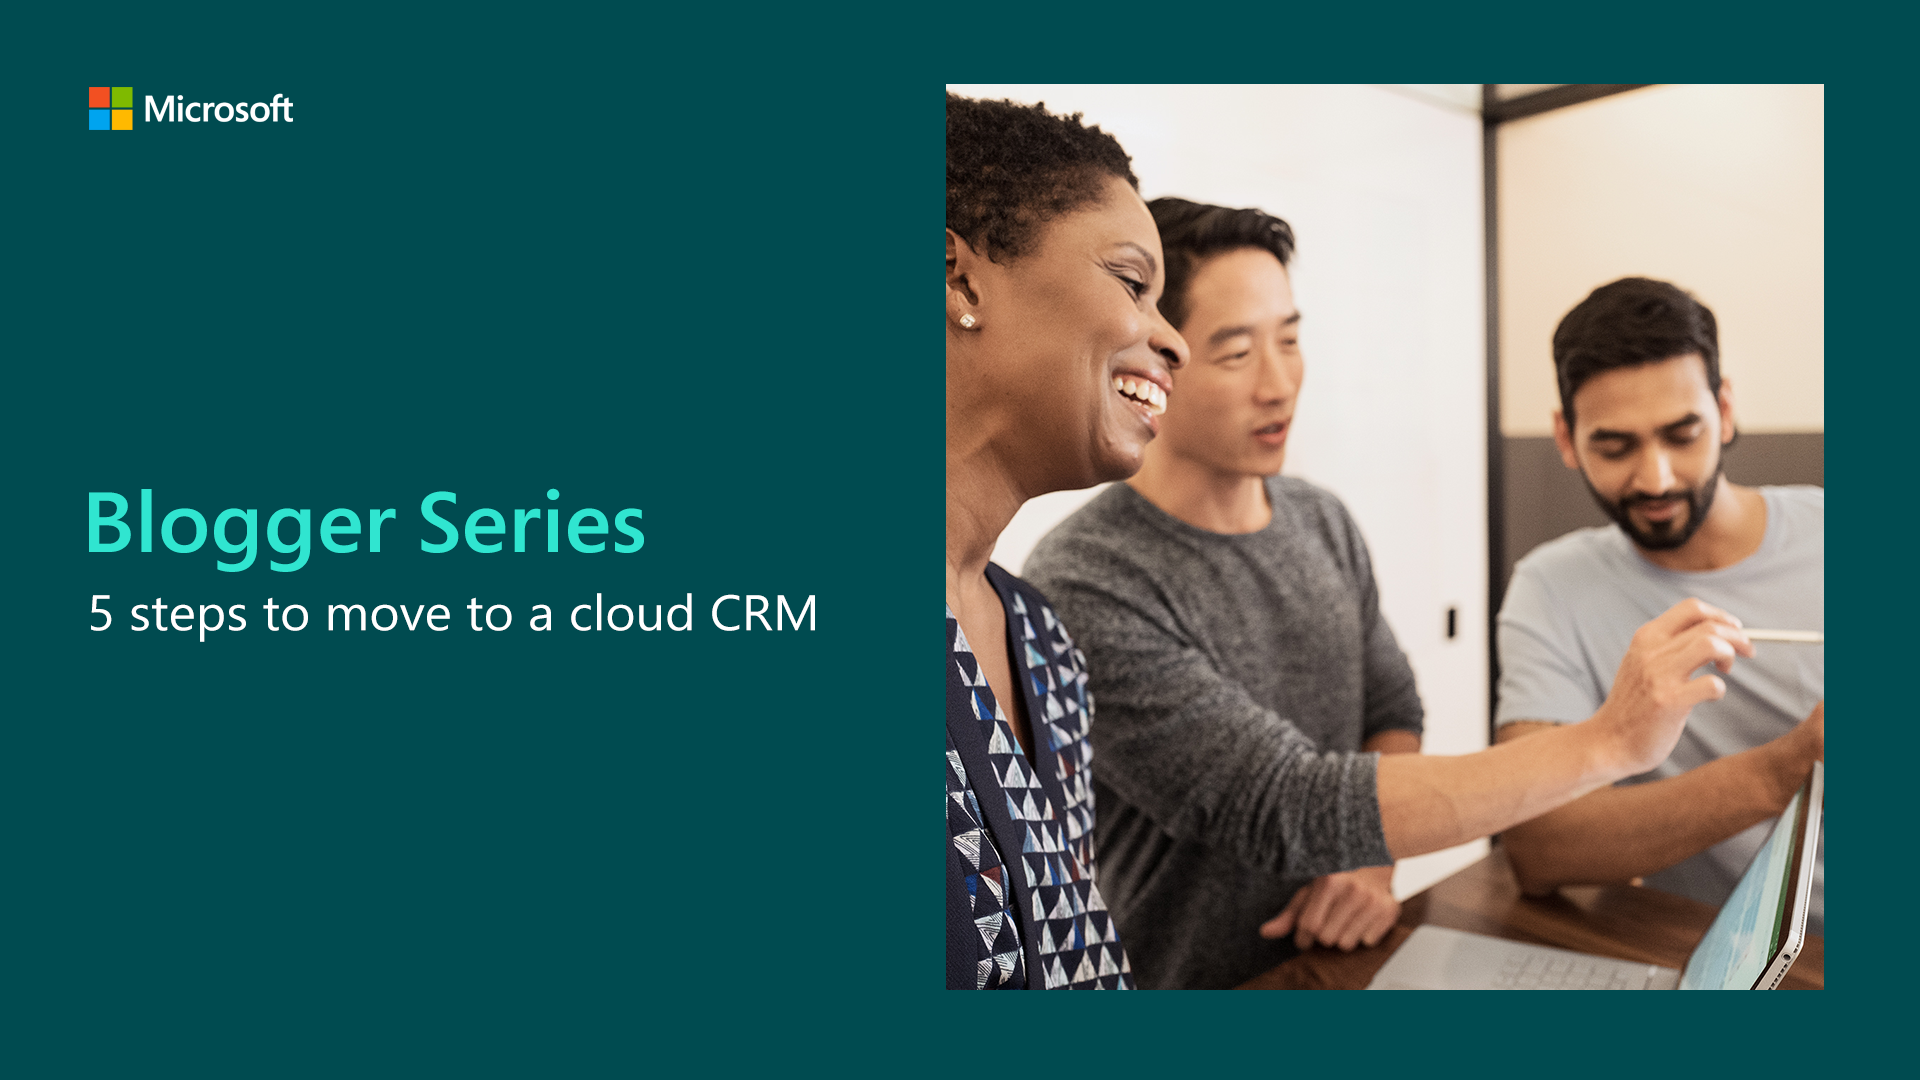 5 steps to move to a cloud CRM graphic